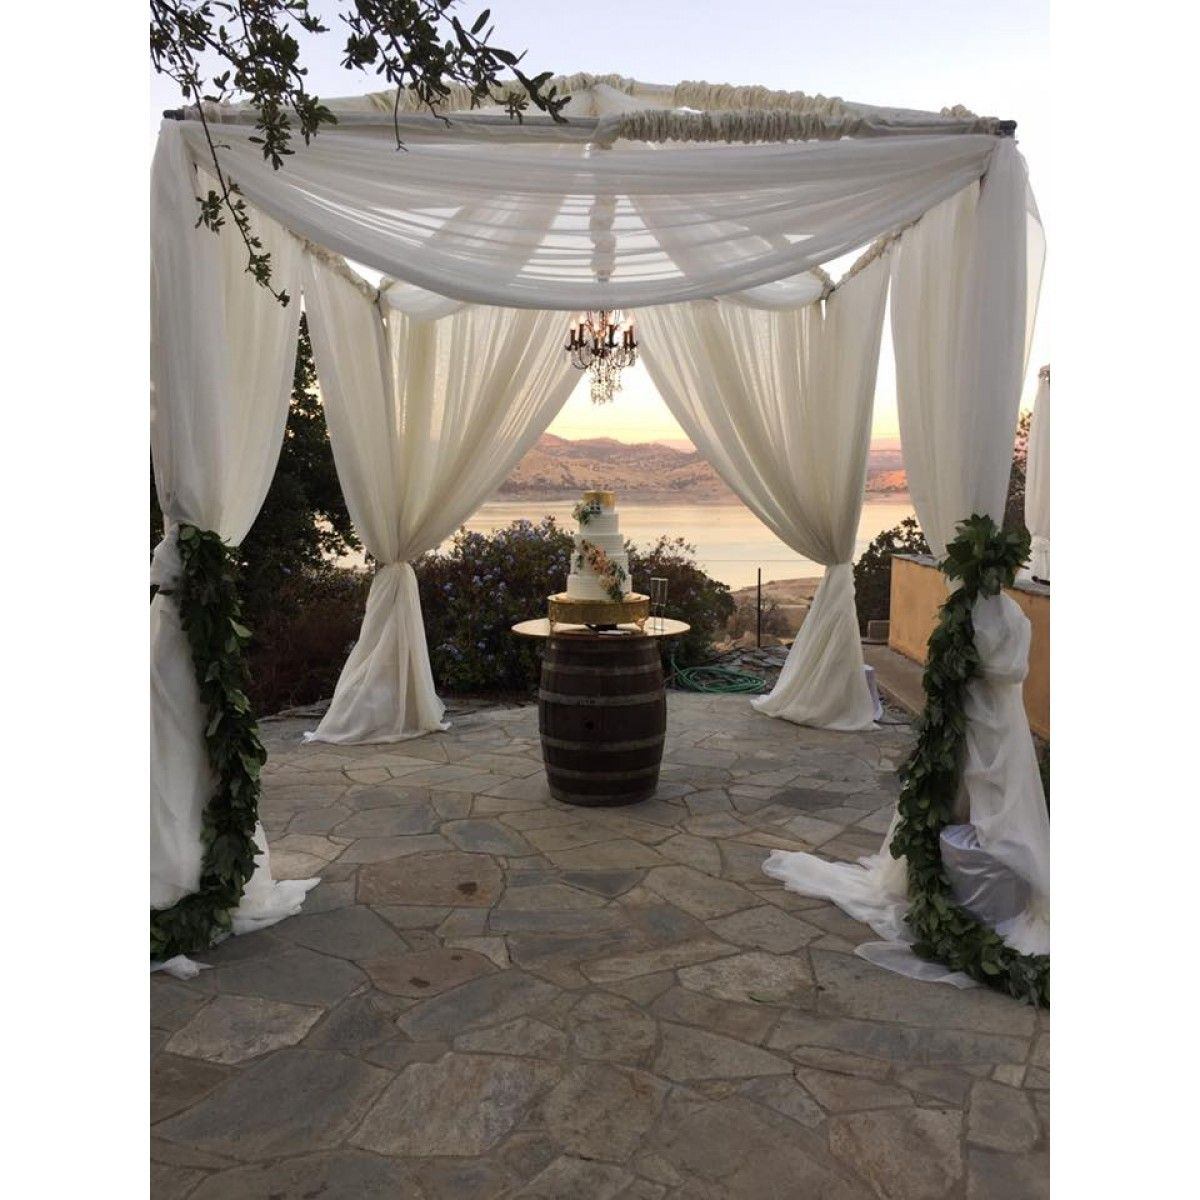 1 Of 10 X10 Tent 8 Legs 10x10 Tent Tent Wedding Rentals